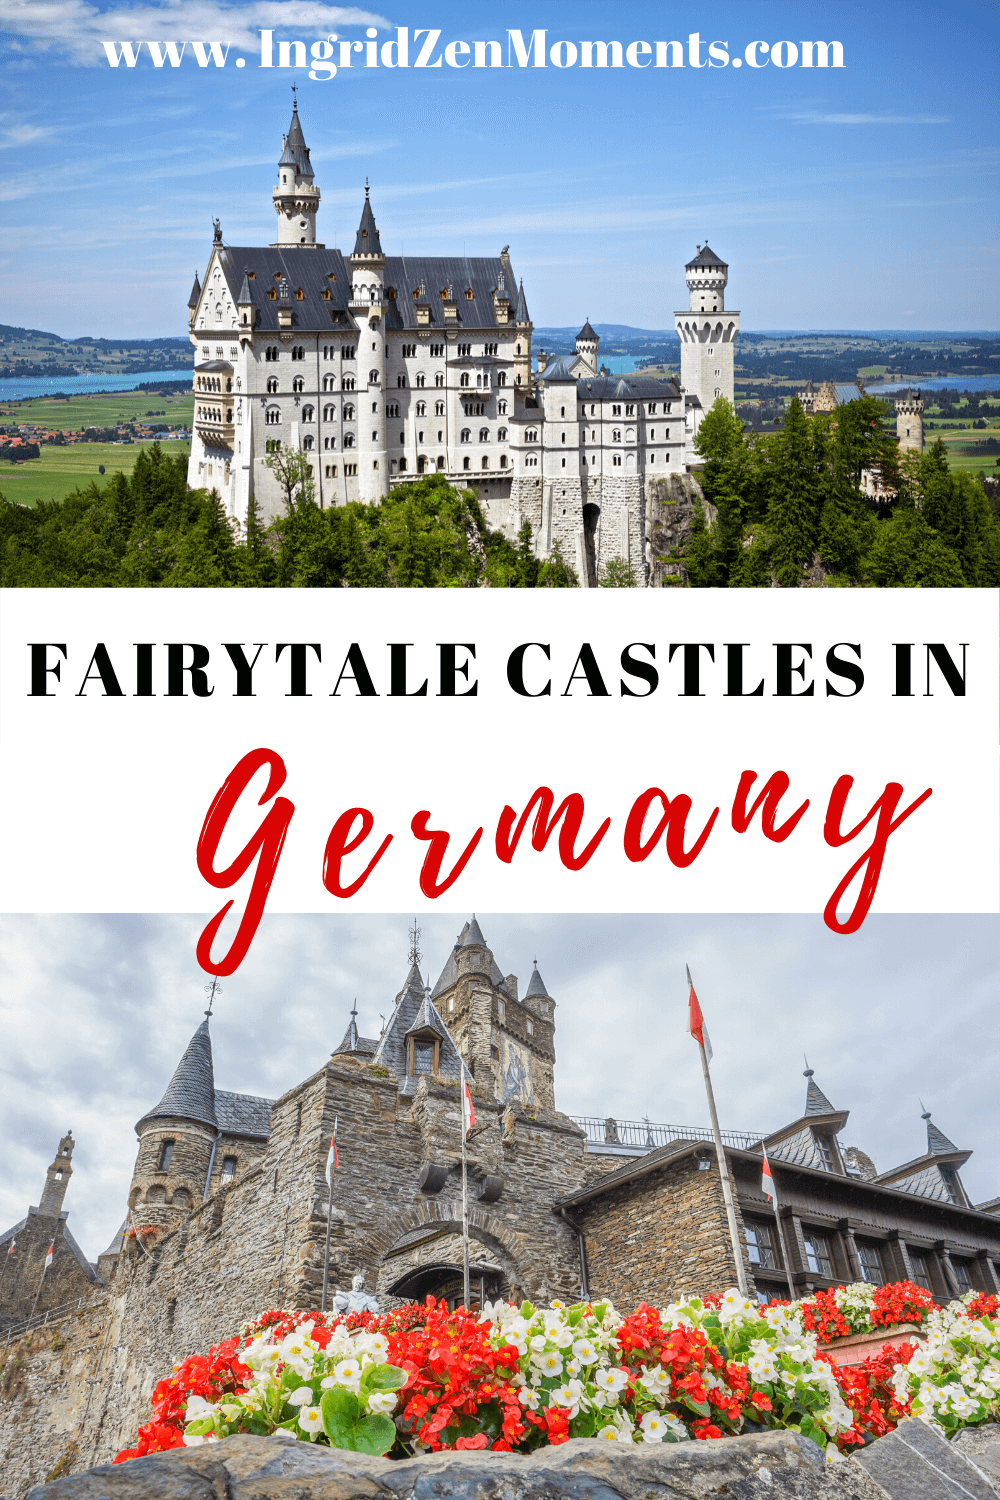 These are the best castles in Germany you must visit on your next Germany vacation. Neuschwanstein Castle, Germany Places to Visit | Germany things to do| places to visit in Germany